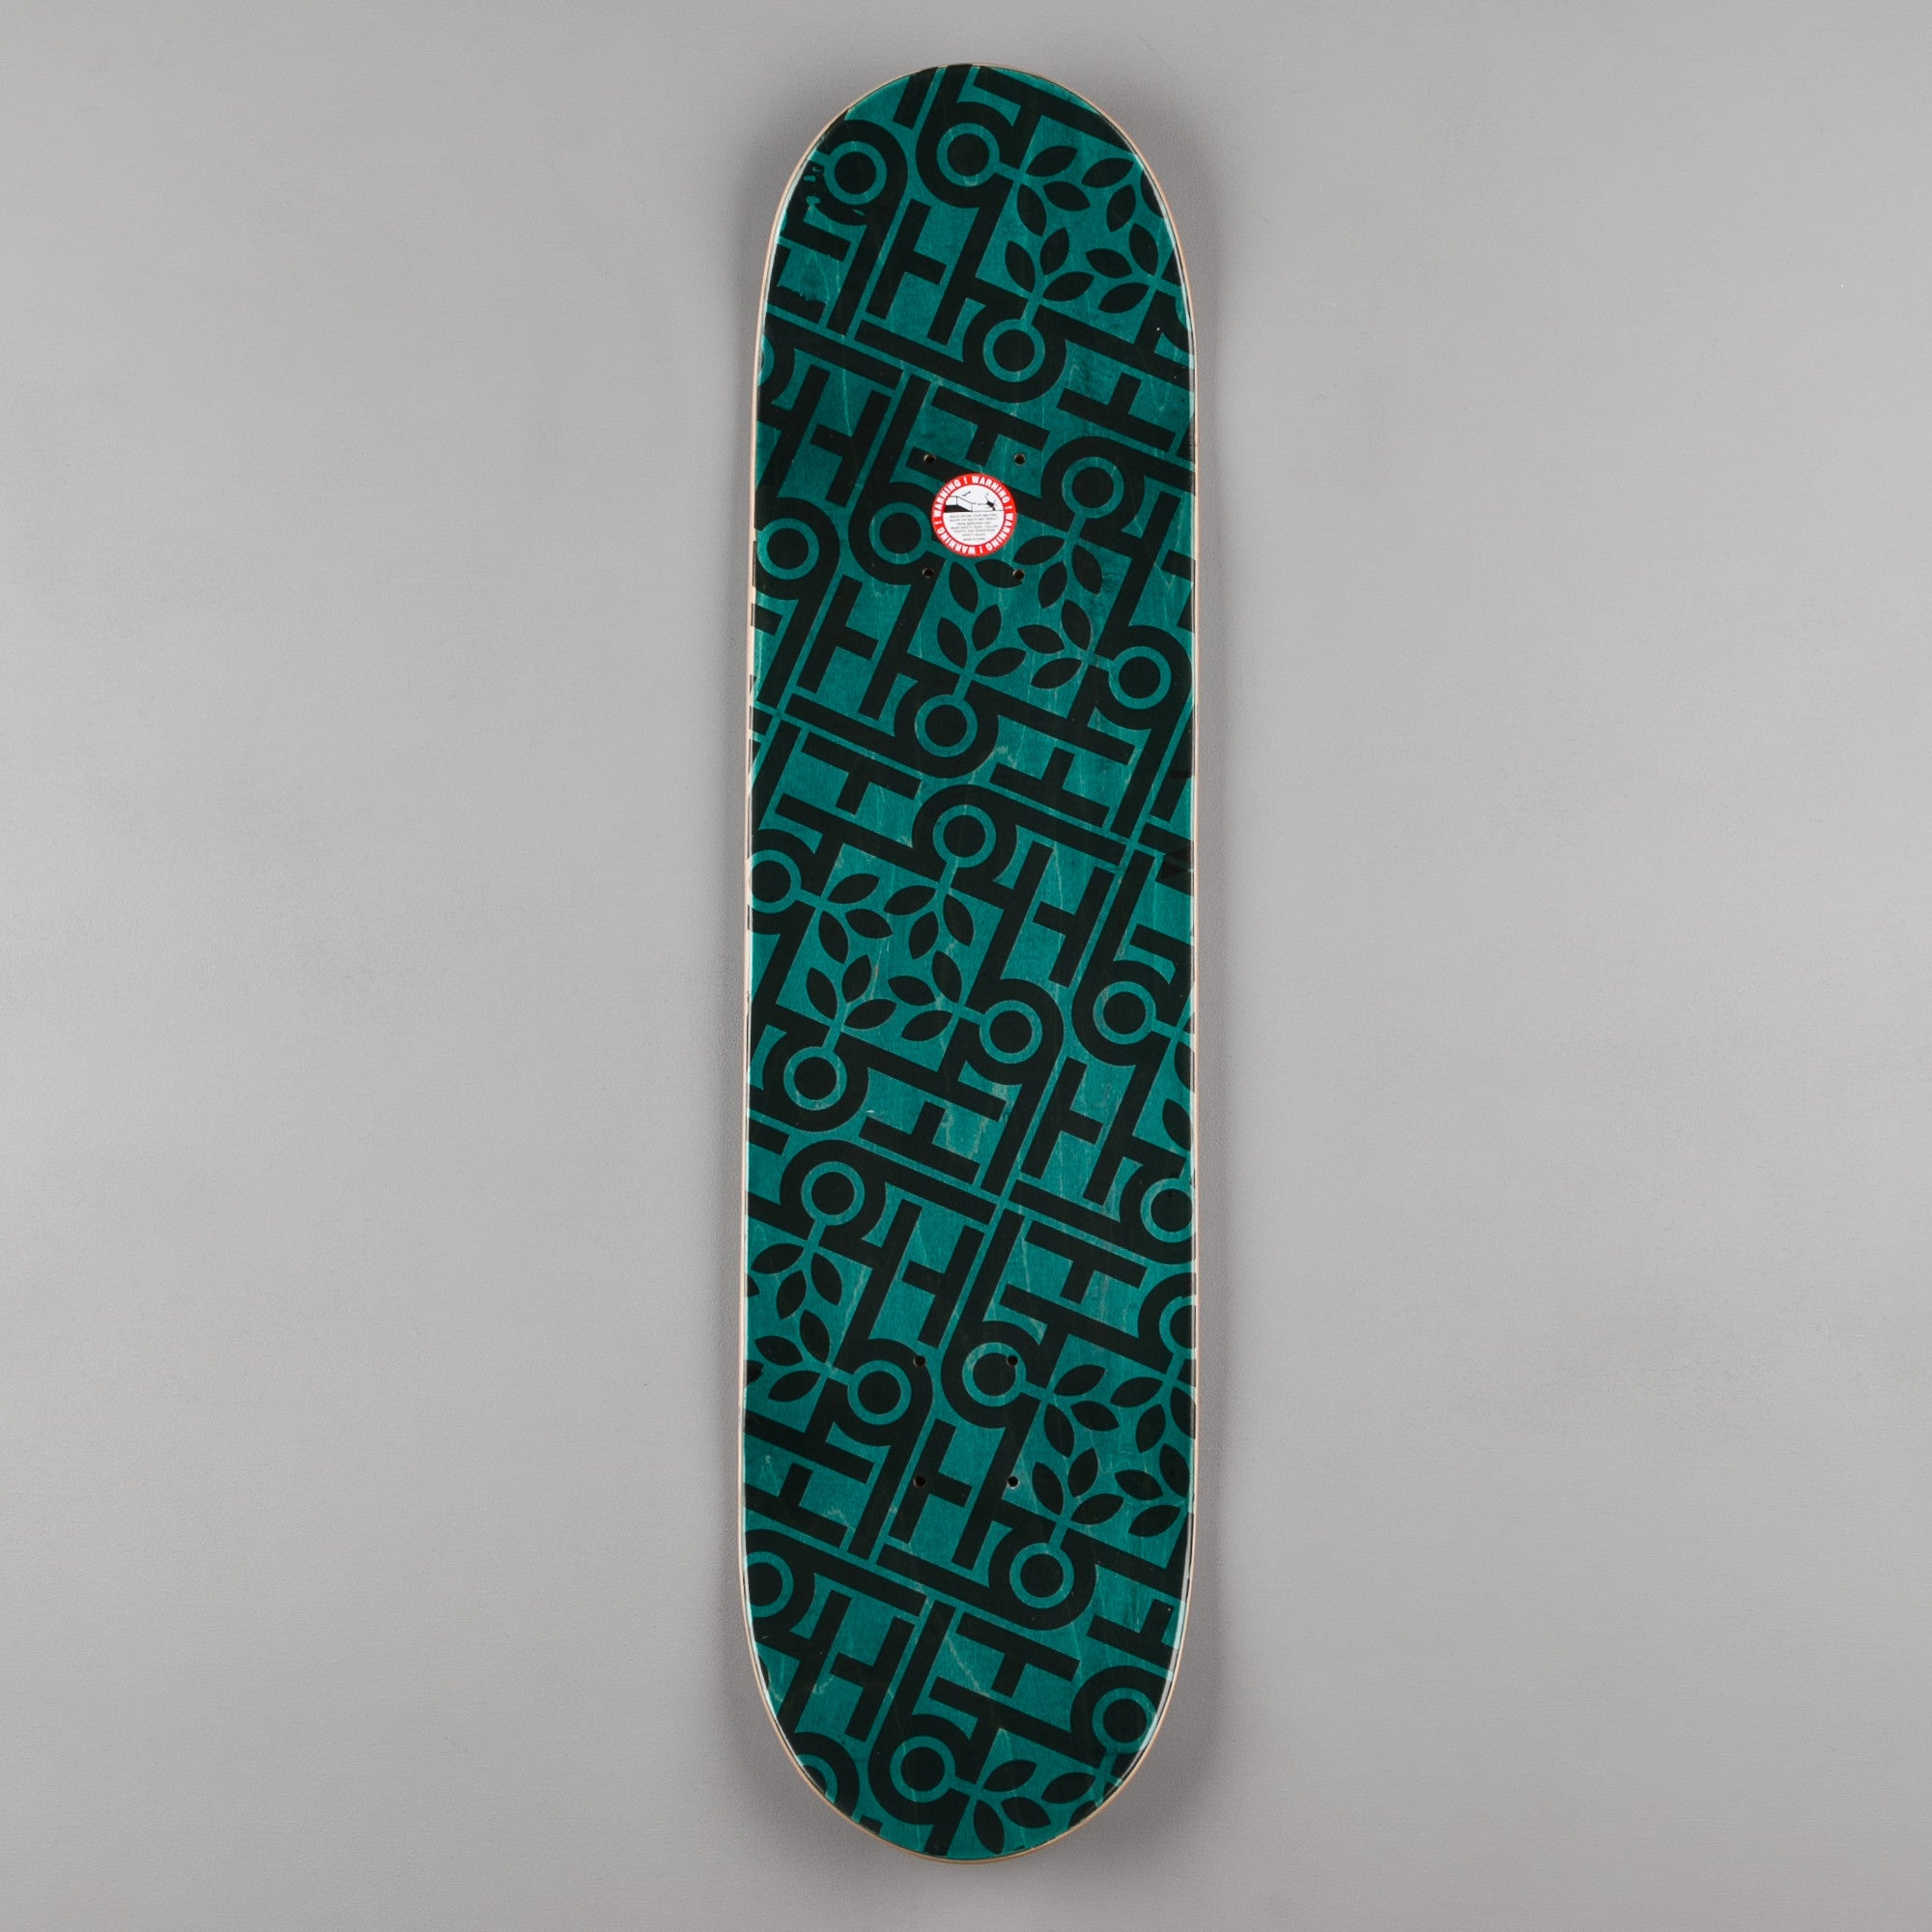 Habitat Skateboards Mark Suciu Aqualung Deck - 8.0""